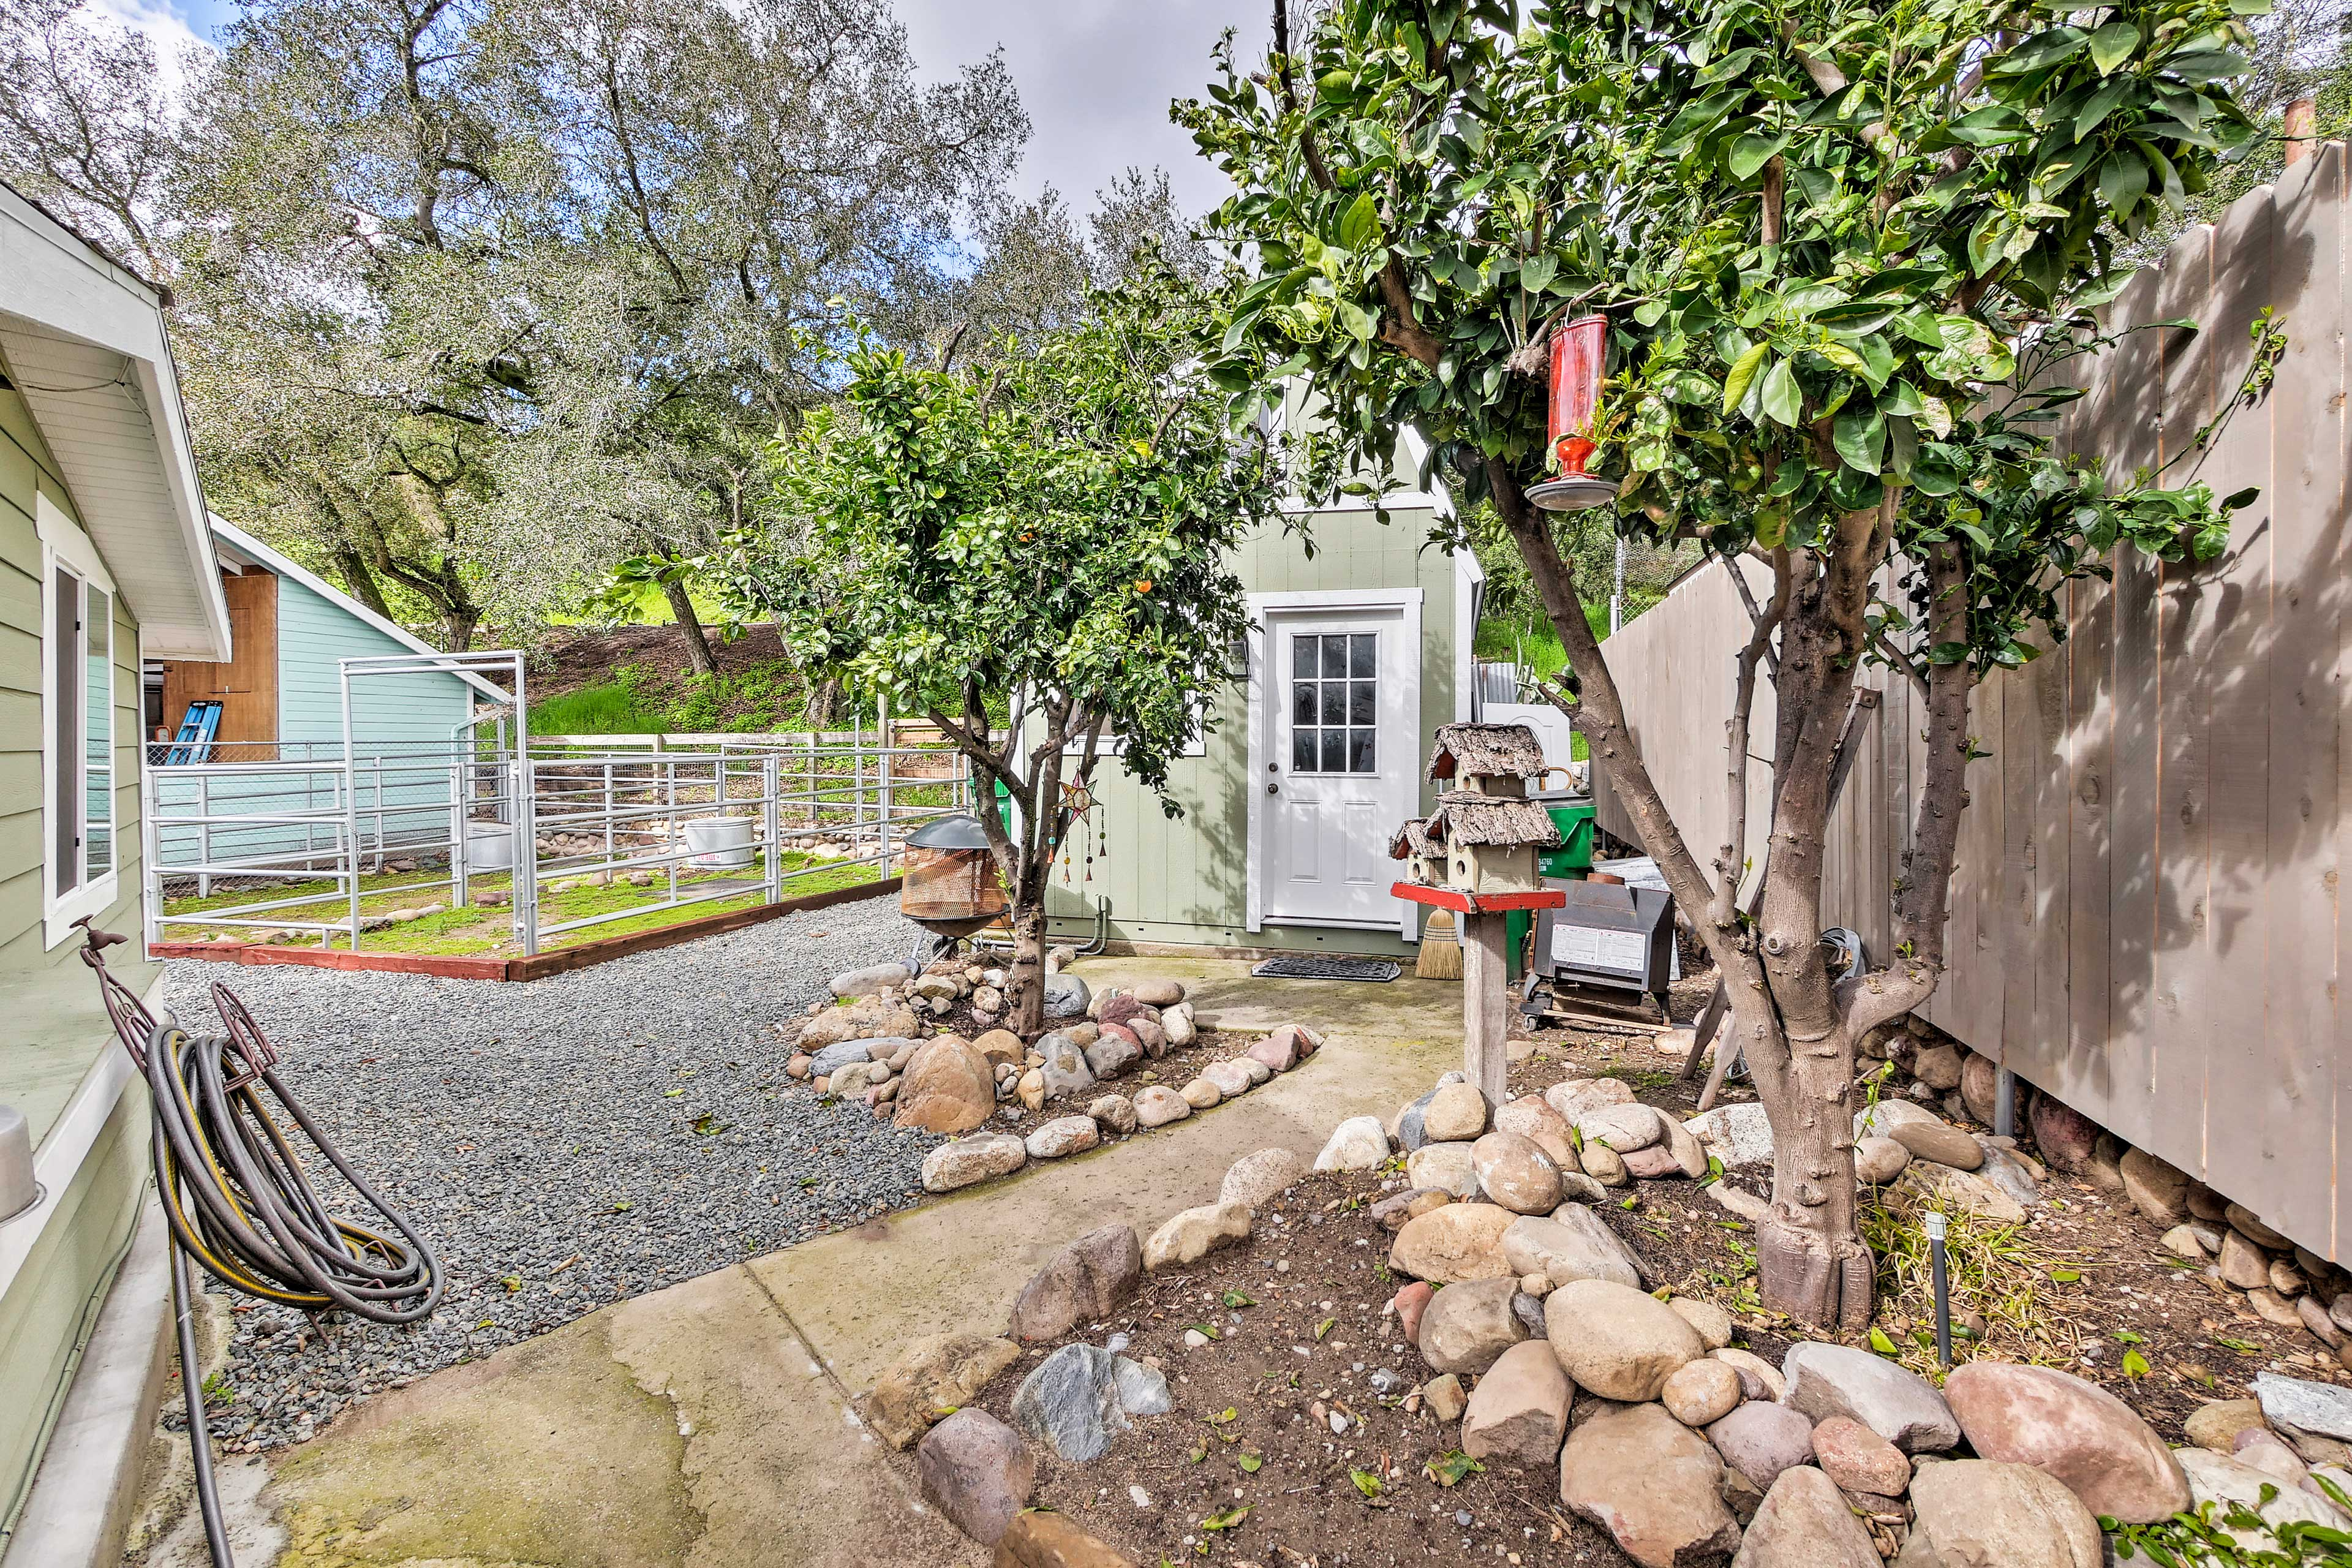 Charming landscaping surrounds the cottage.